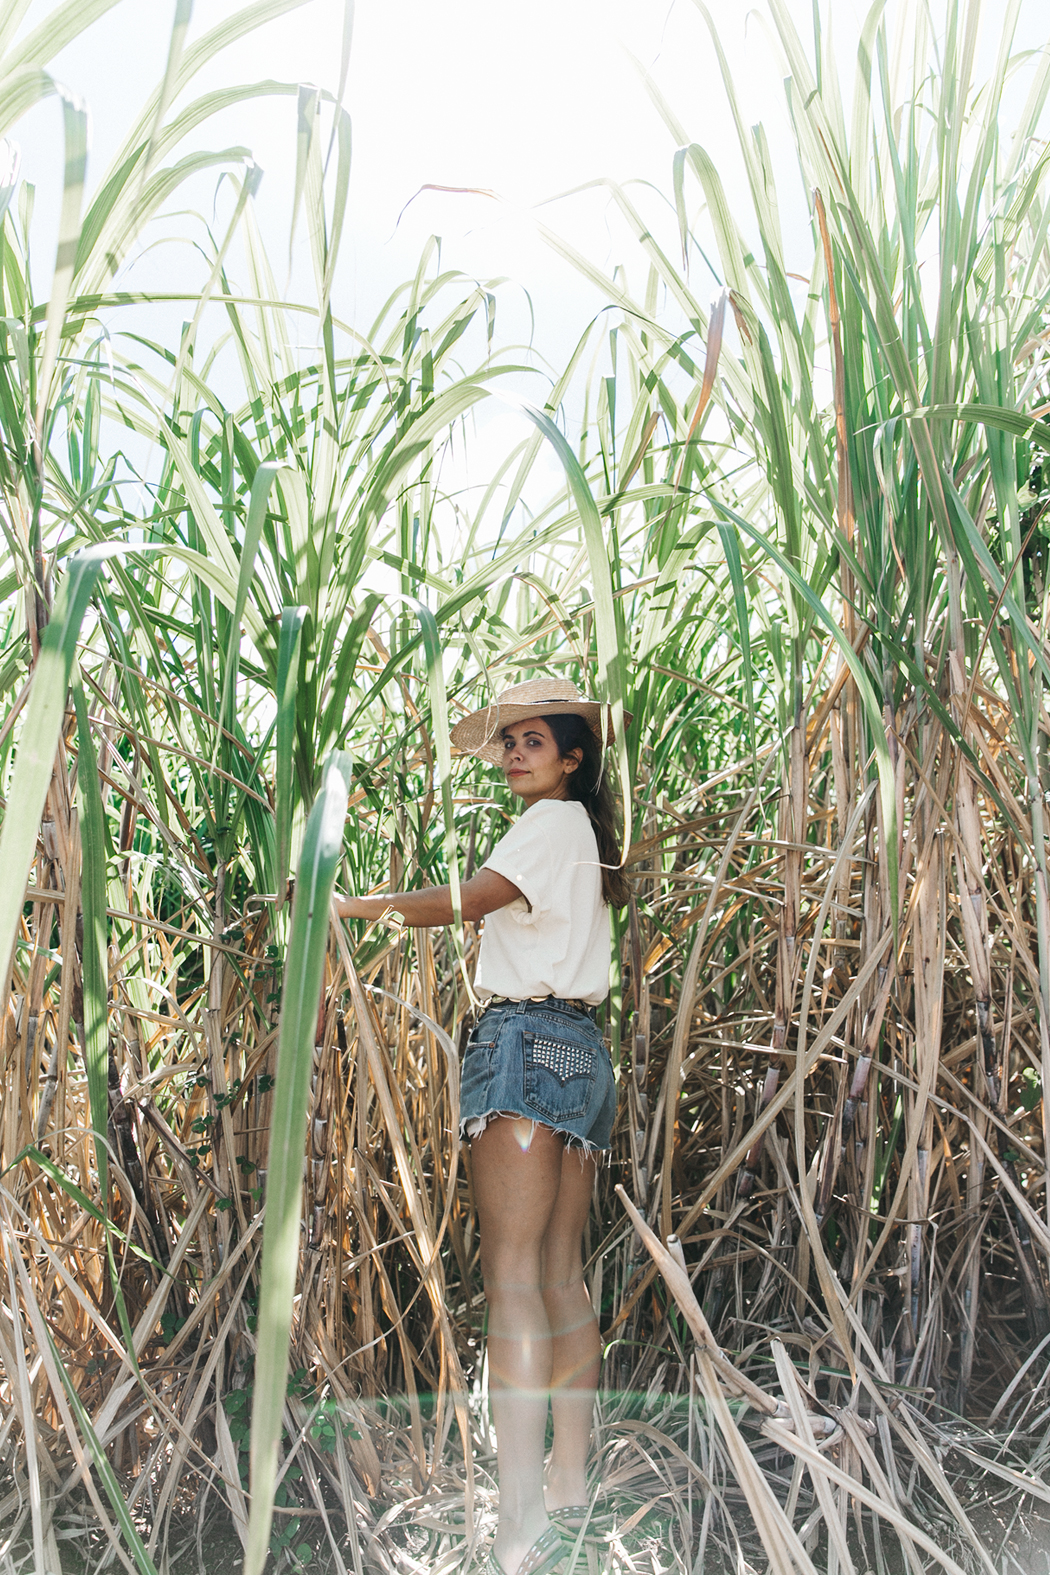 Jamica-Sugar_Cane_Field-Levis-Straw_Hat-Reebok_Tee-Outfit-Summer-Collage_on_The_Road-Bamboo_Walls-38